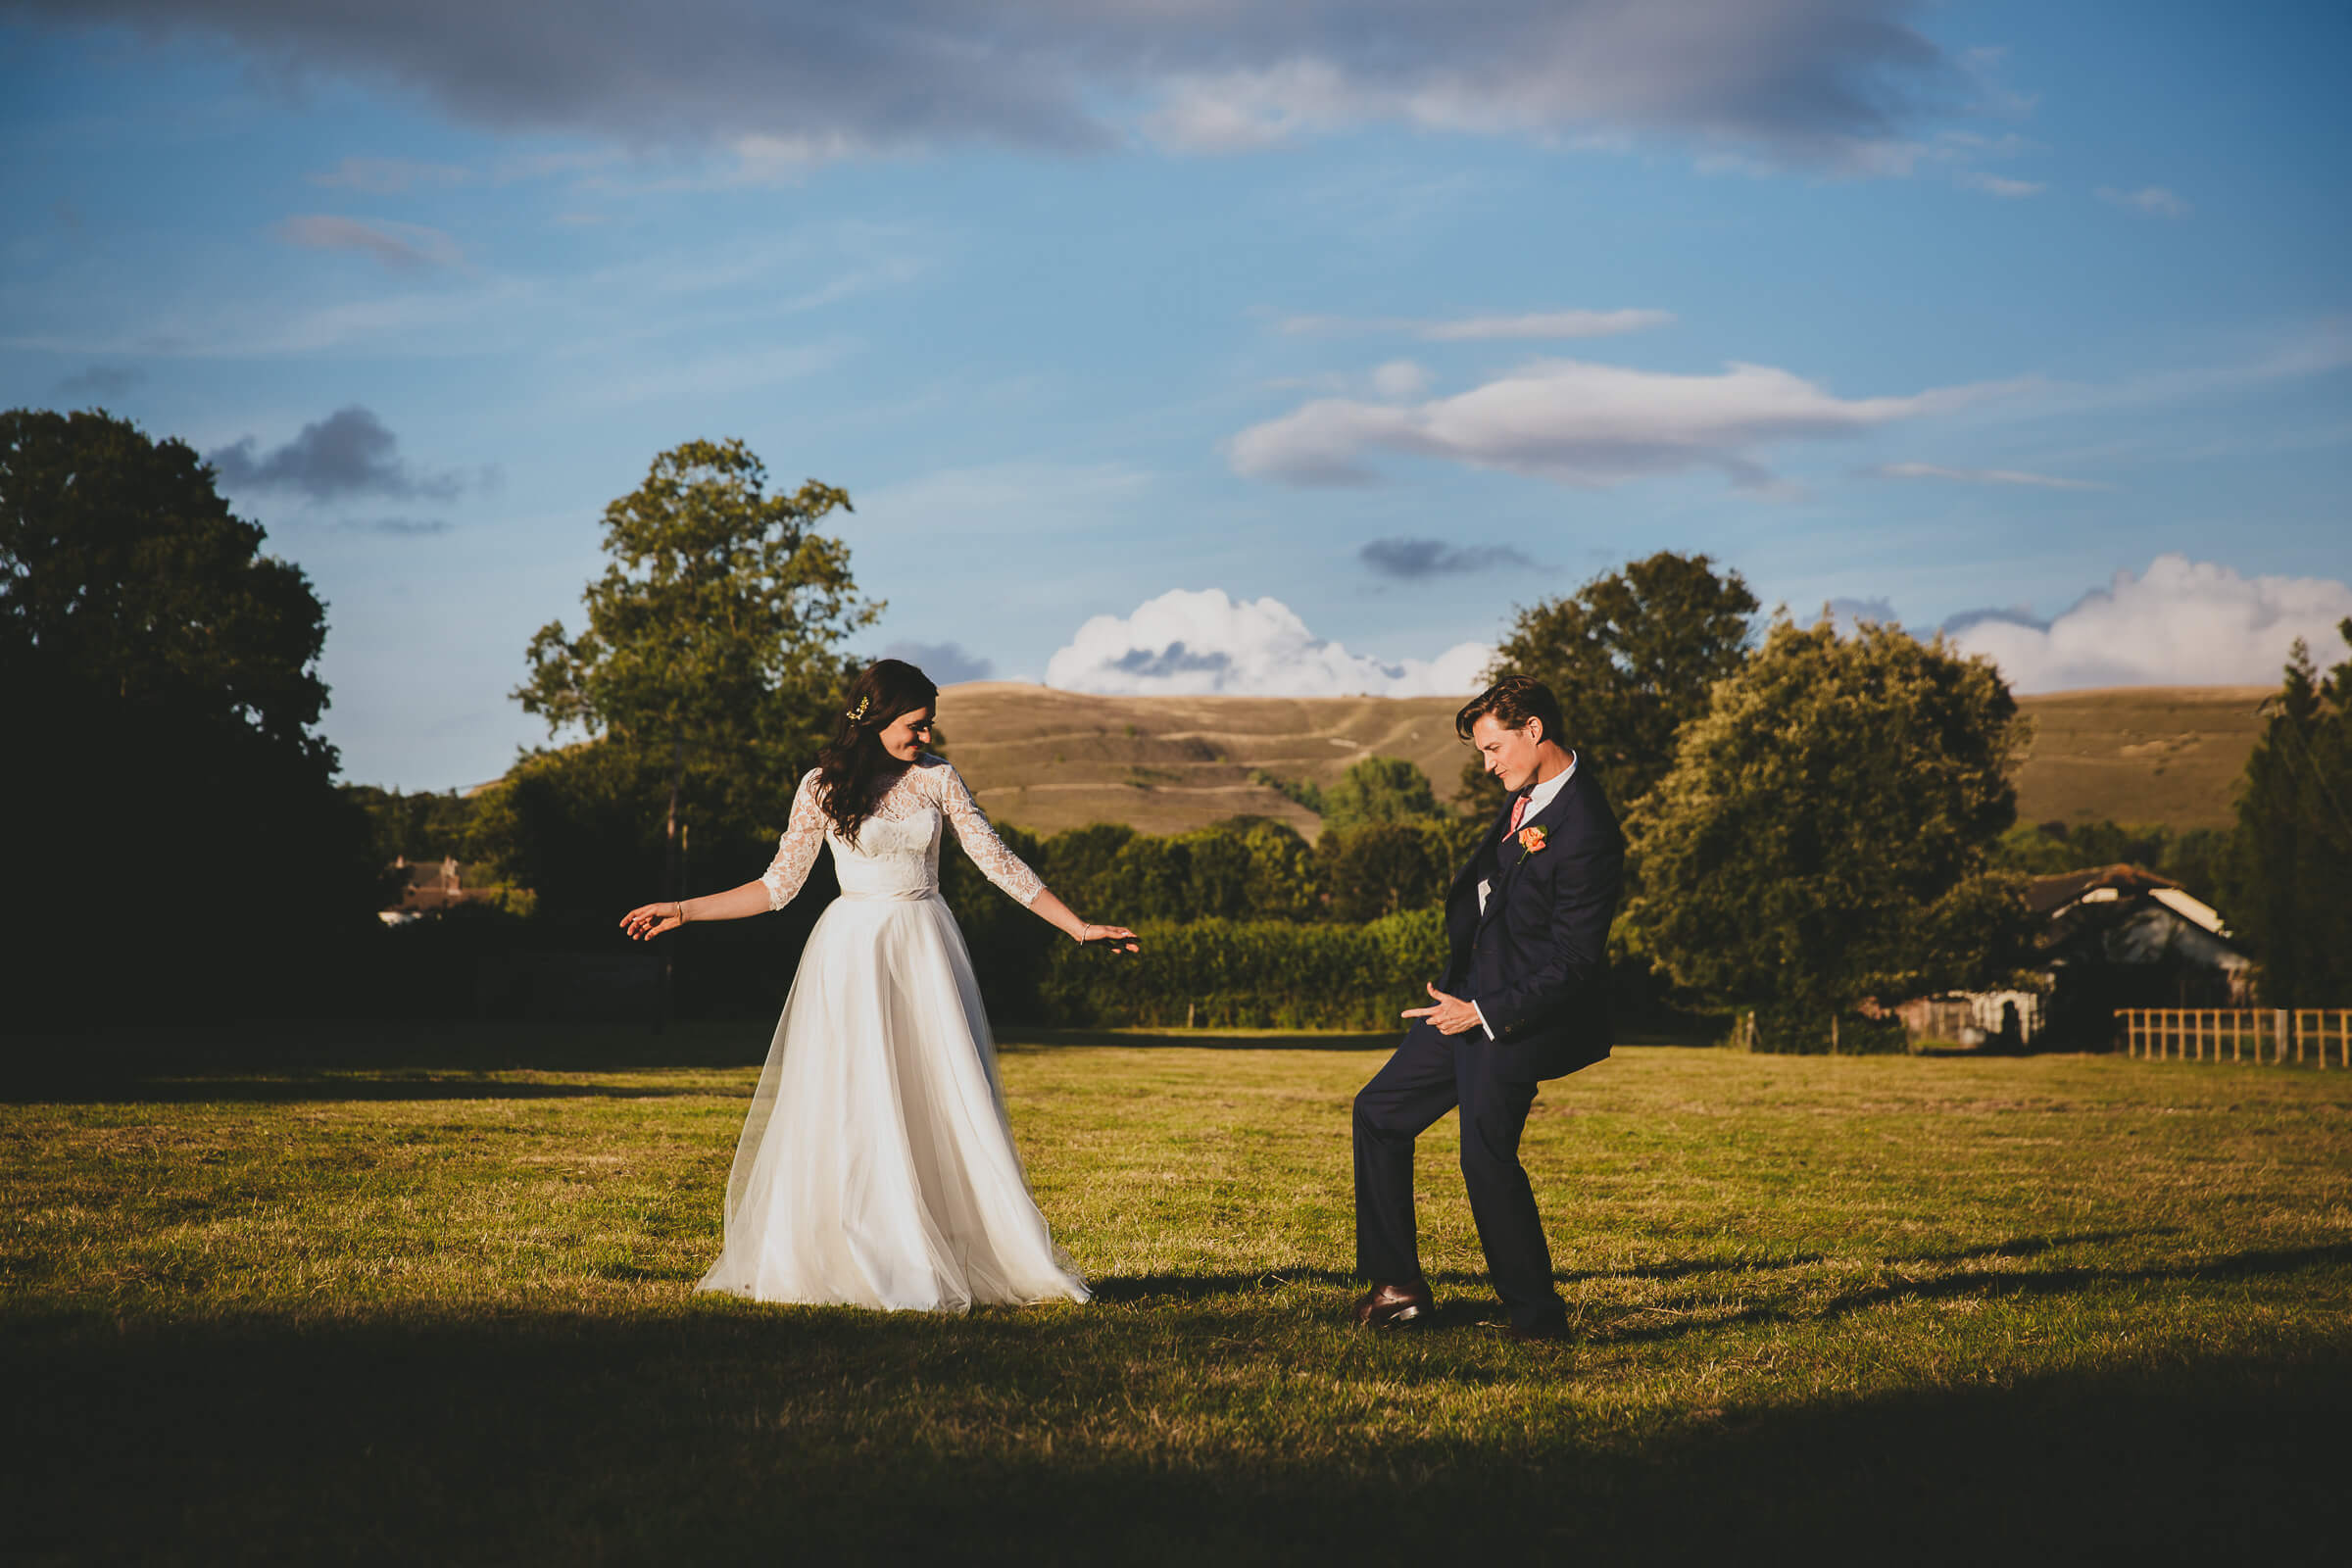 Creative Wedding Photography Ideas: Dorset Wedding Photographer